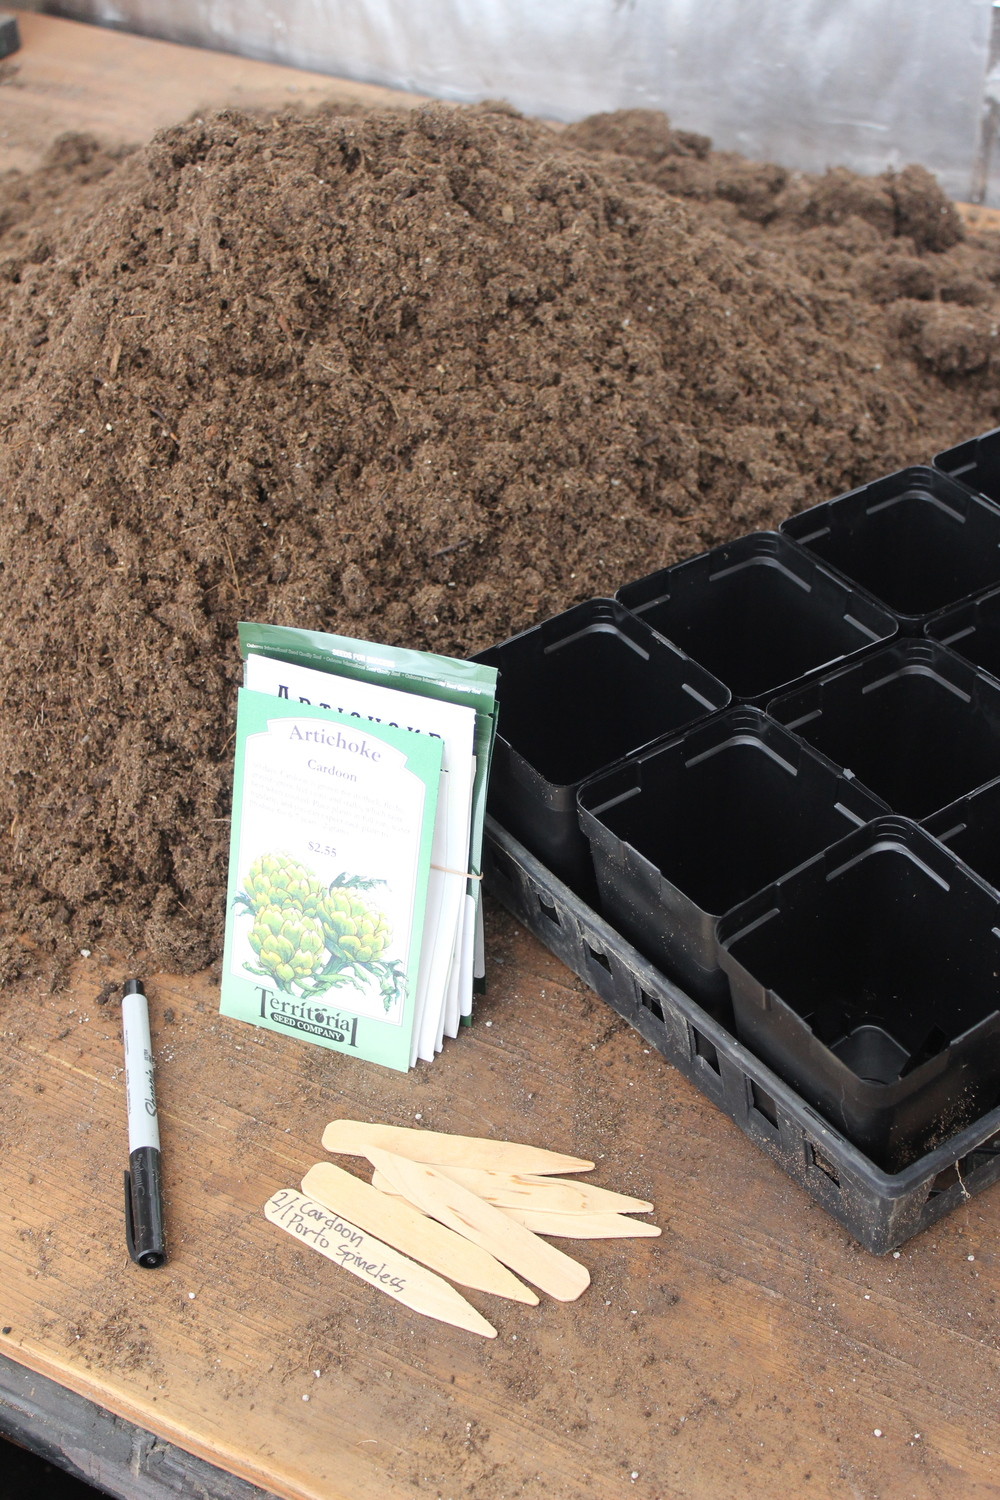 Seeding continues in the greenhouse as spring is right around the corner.